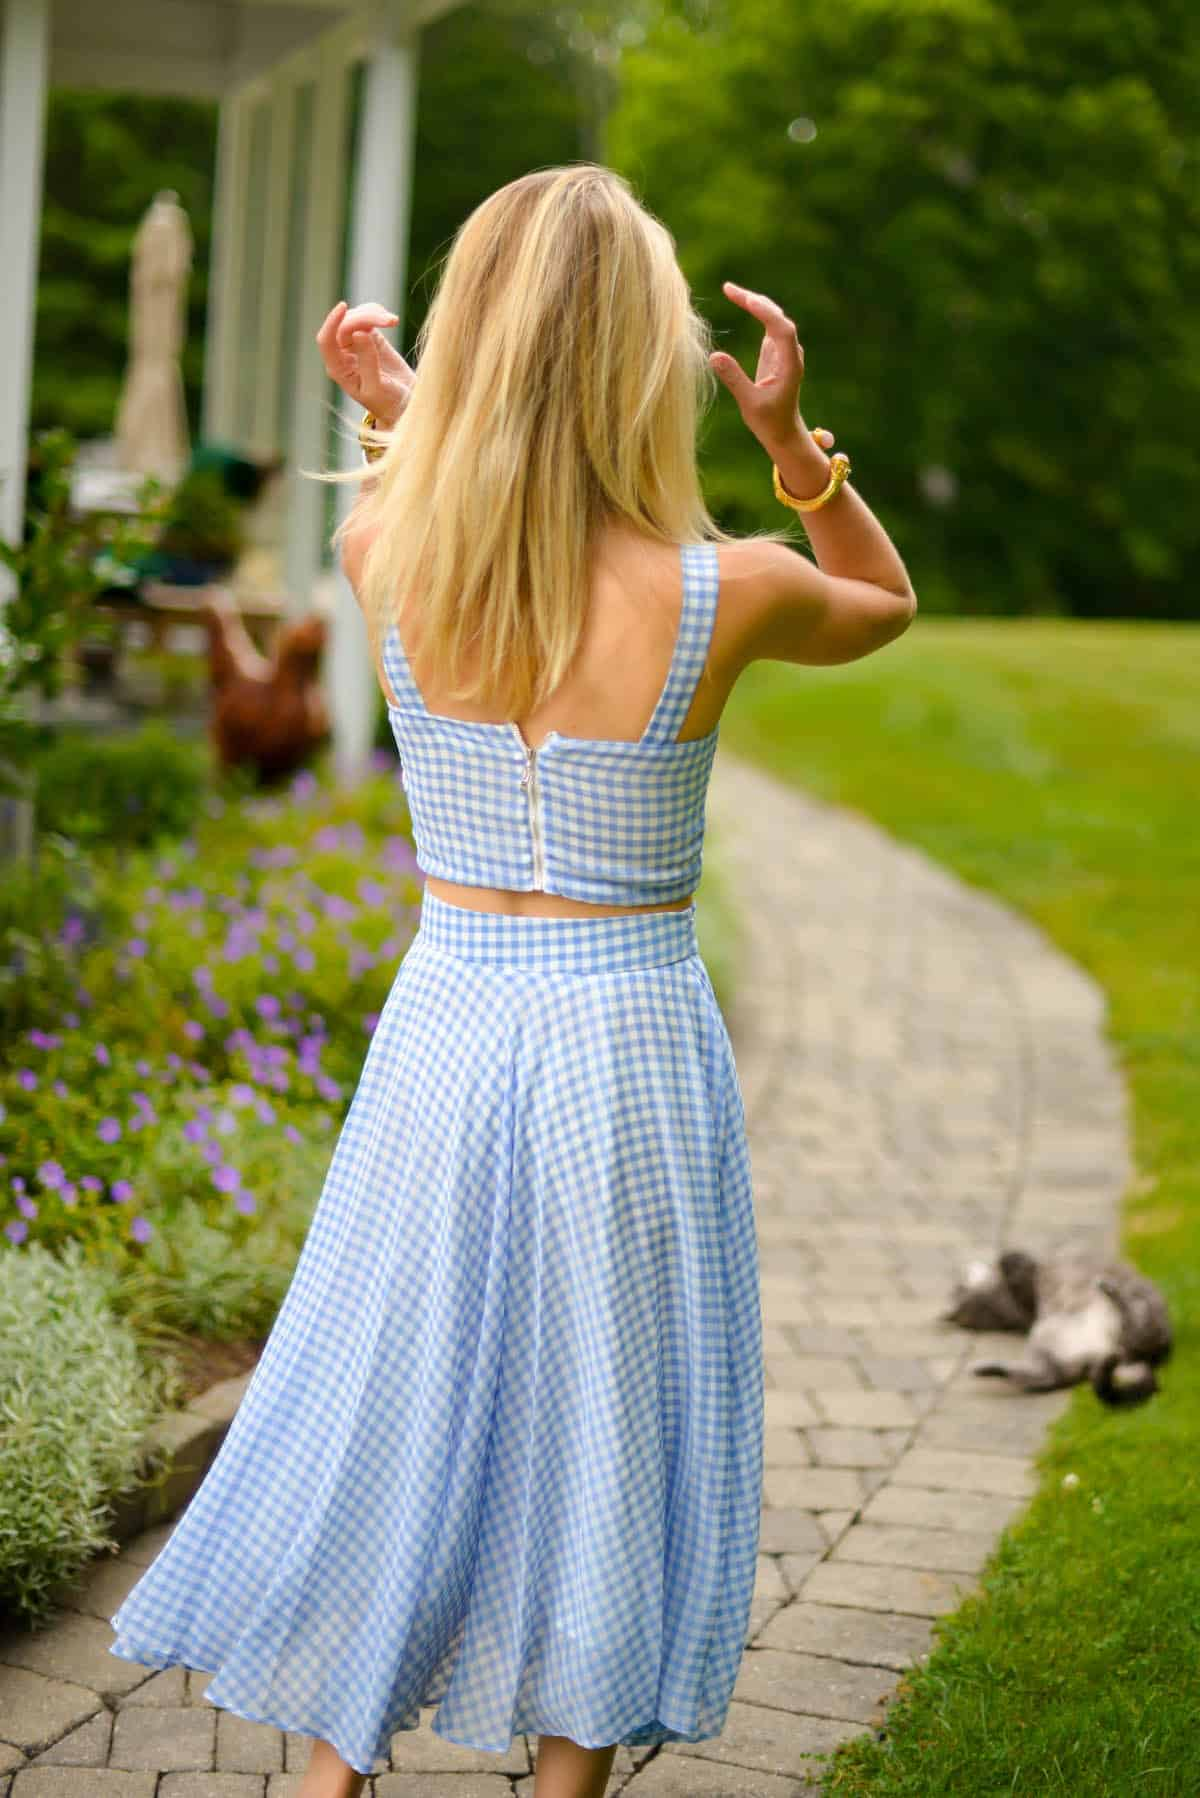 Gingham Crop Top And Skirt Set Katie S Bliss